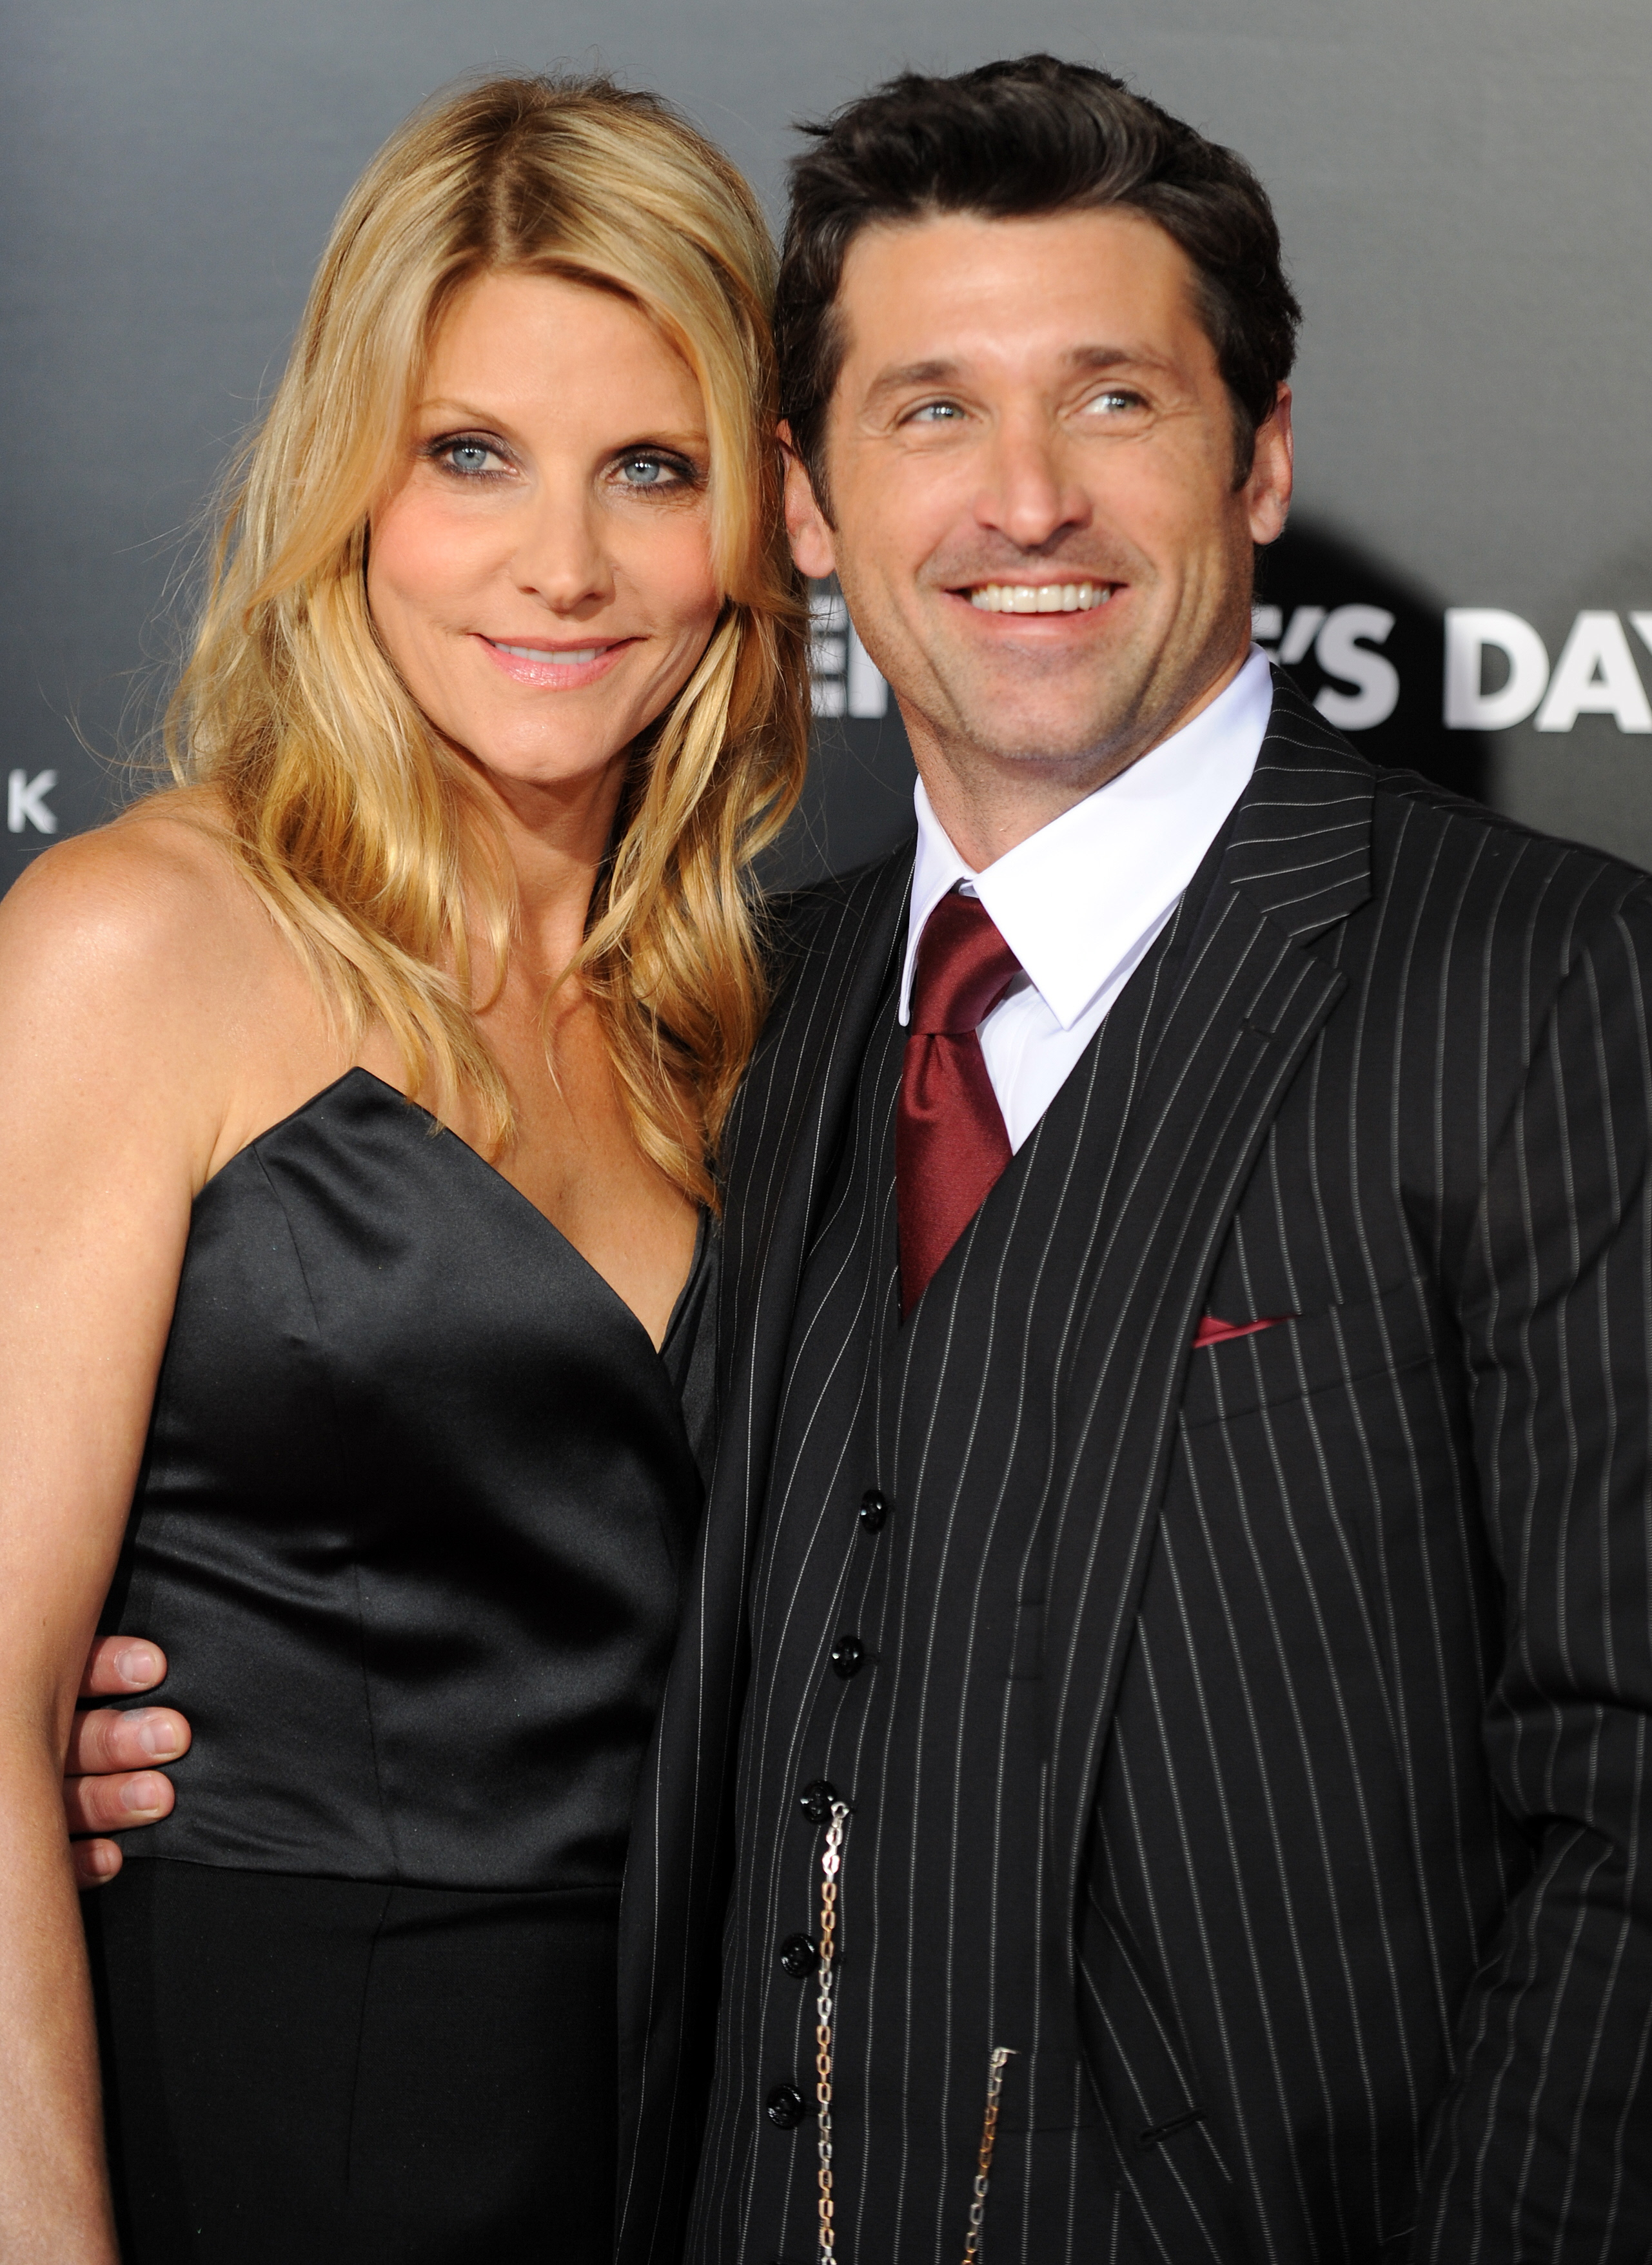 Patrick Dempsey Wife Announce Divorce But Their Statement Is